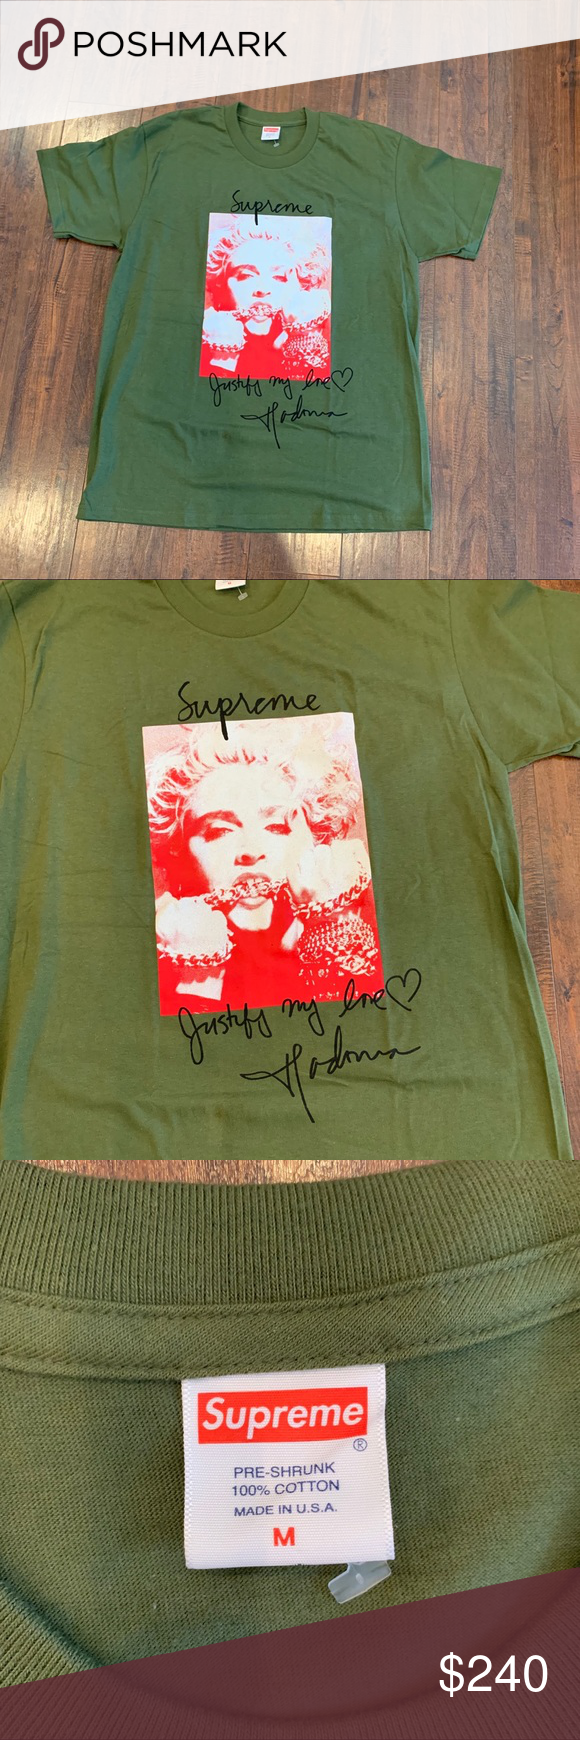 68d29a4488c2 Supreme Madonna tee! Rare olive green color! Supreme Madonna tee! Rare! Sold